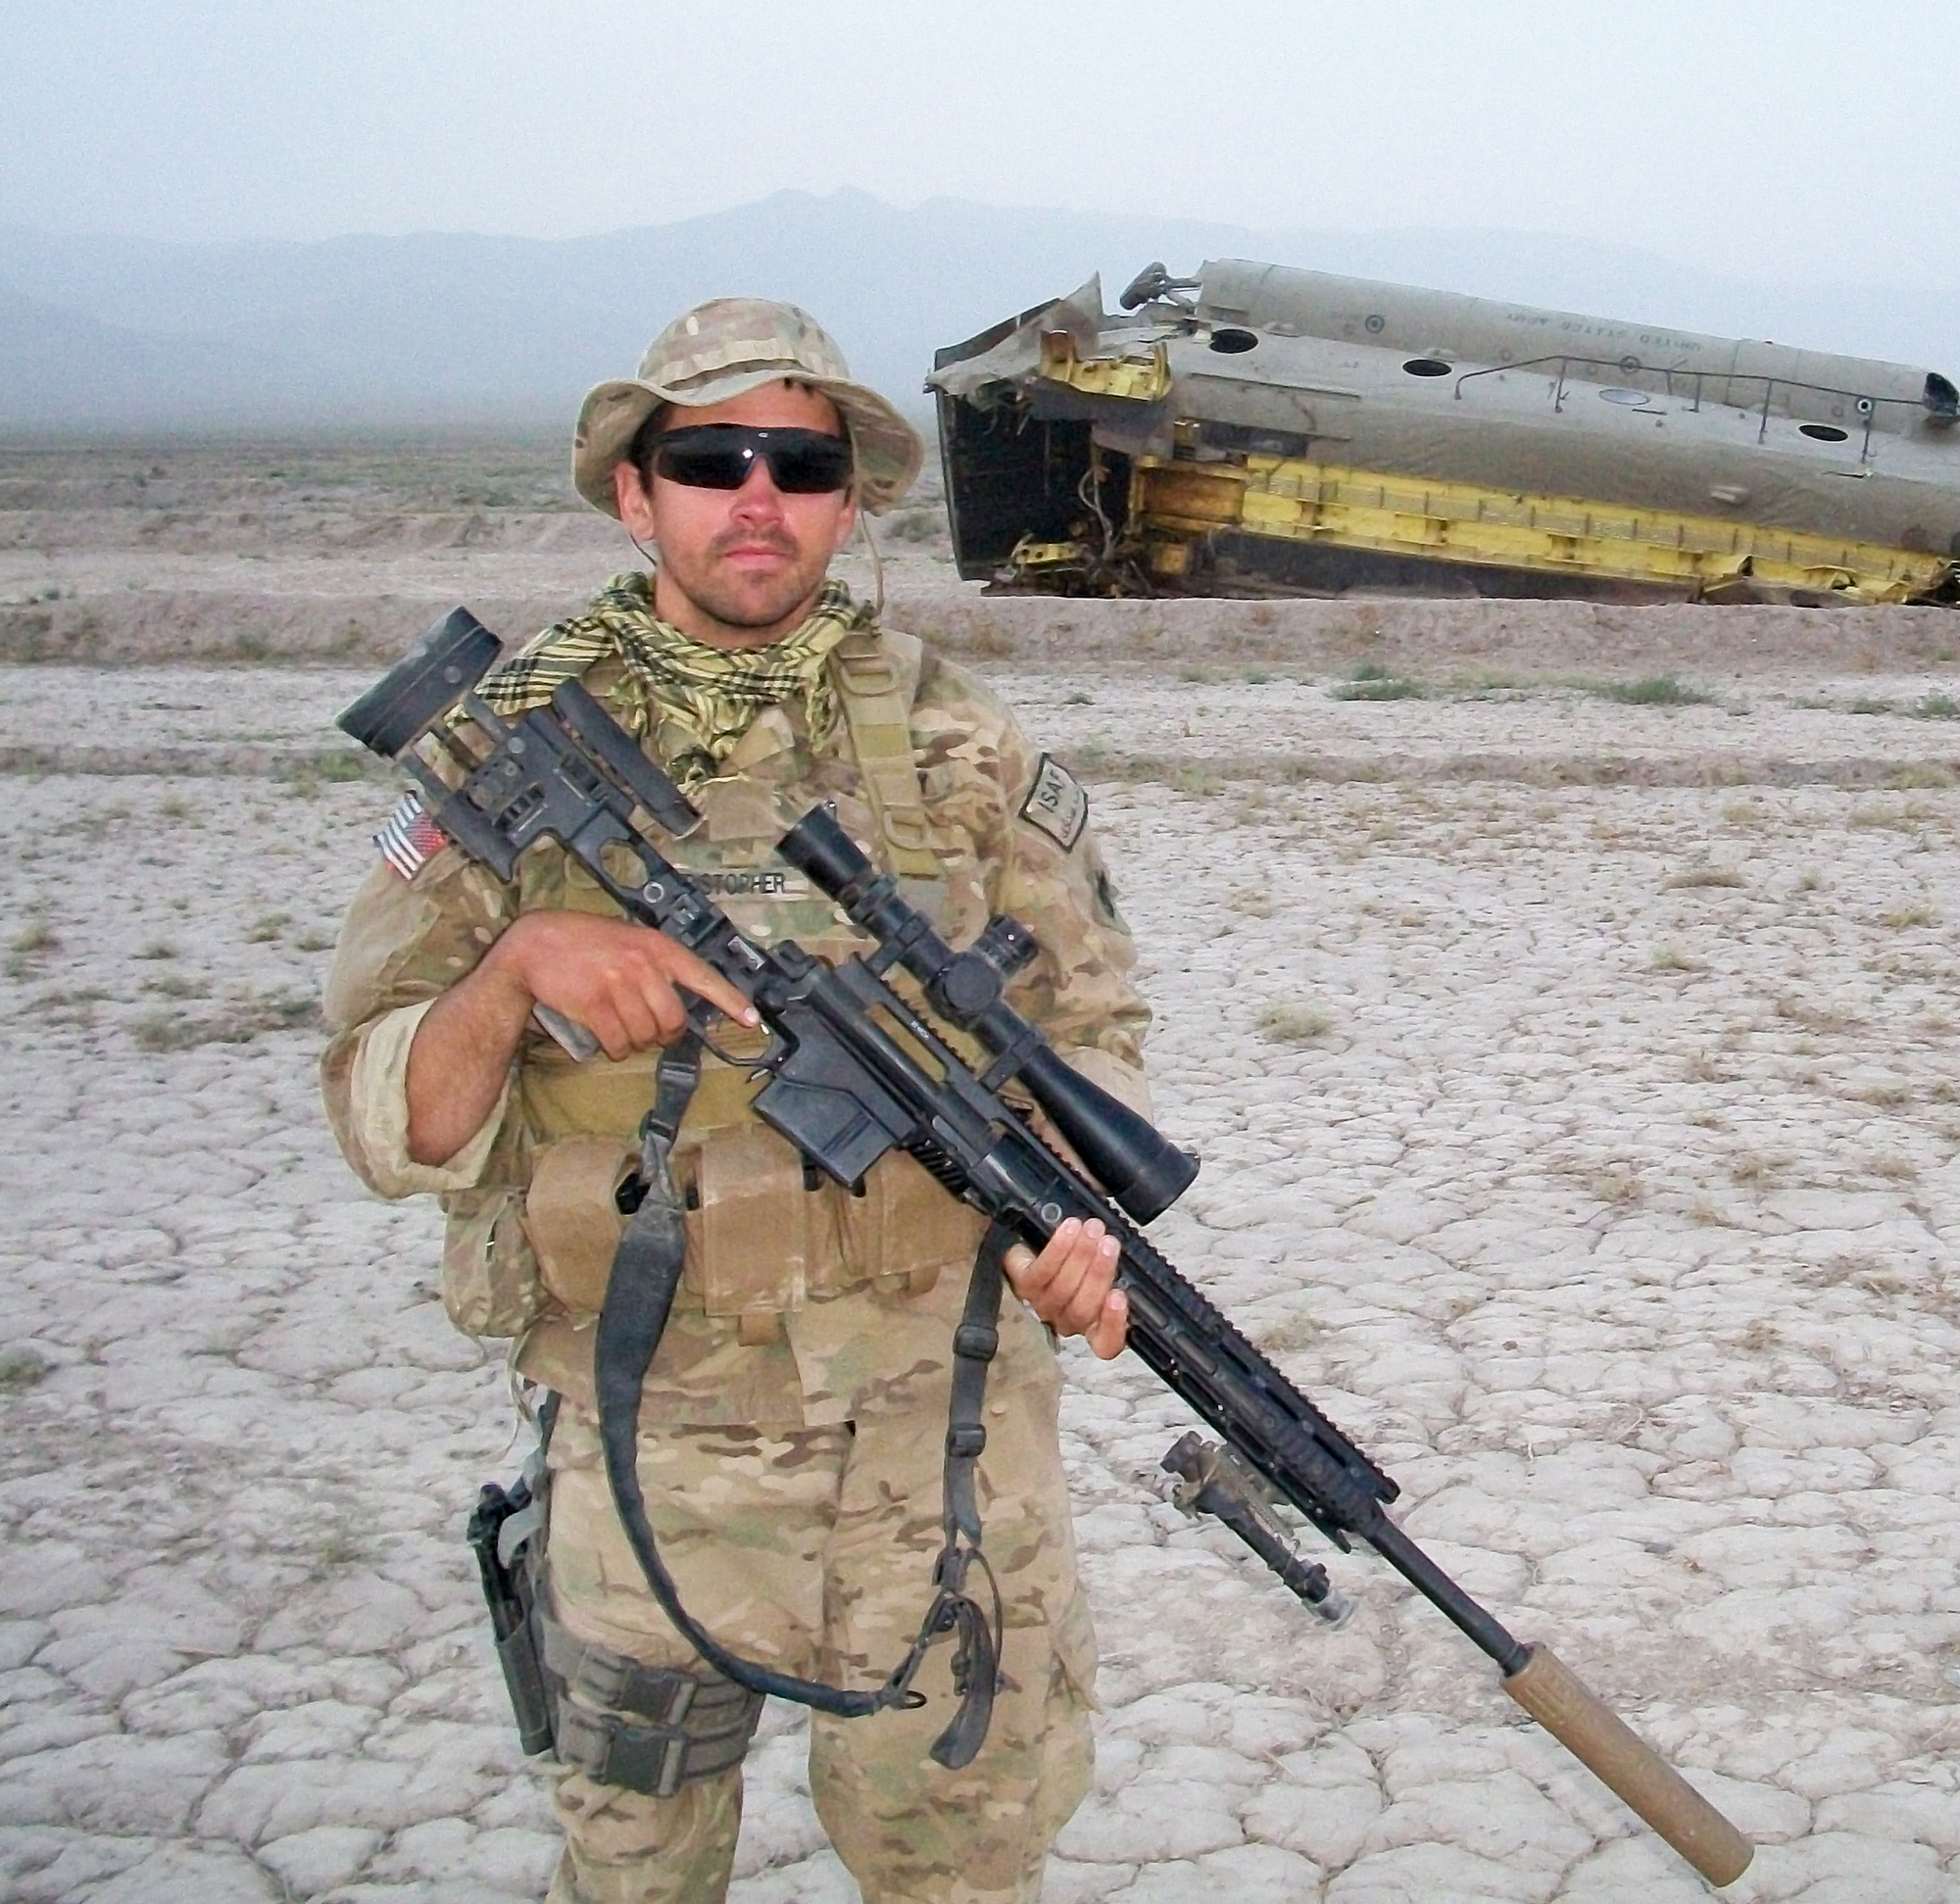 U.S. Army Spc. Christopher D. Horton, of Collinsville, Oklahoma, died Sept. 9, 2011, in Zurmat District, Afghanistan, of wounds sustained when enemy forces attacked his unit with small-arms fire. The 26-year-old was assigned to 1st Battalion, 279 Infantry Regiment, 45th Infantry Brigade Combat Team, Oklahoma National Guard. Horton is survived by his wife, Jane; parents David and Cherie; brother, Nicholas; sister, Tenley; and many other friends and family.